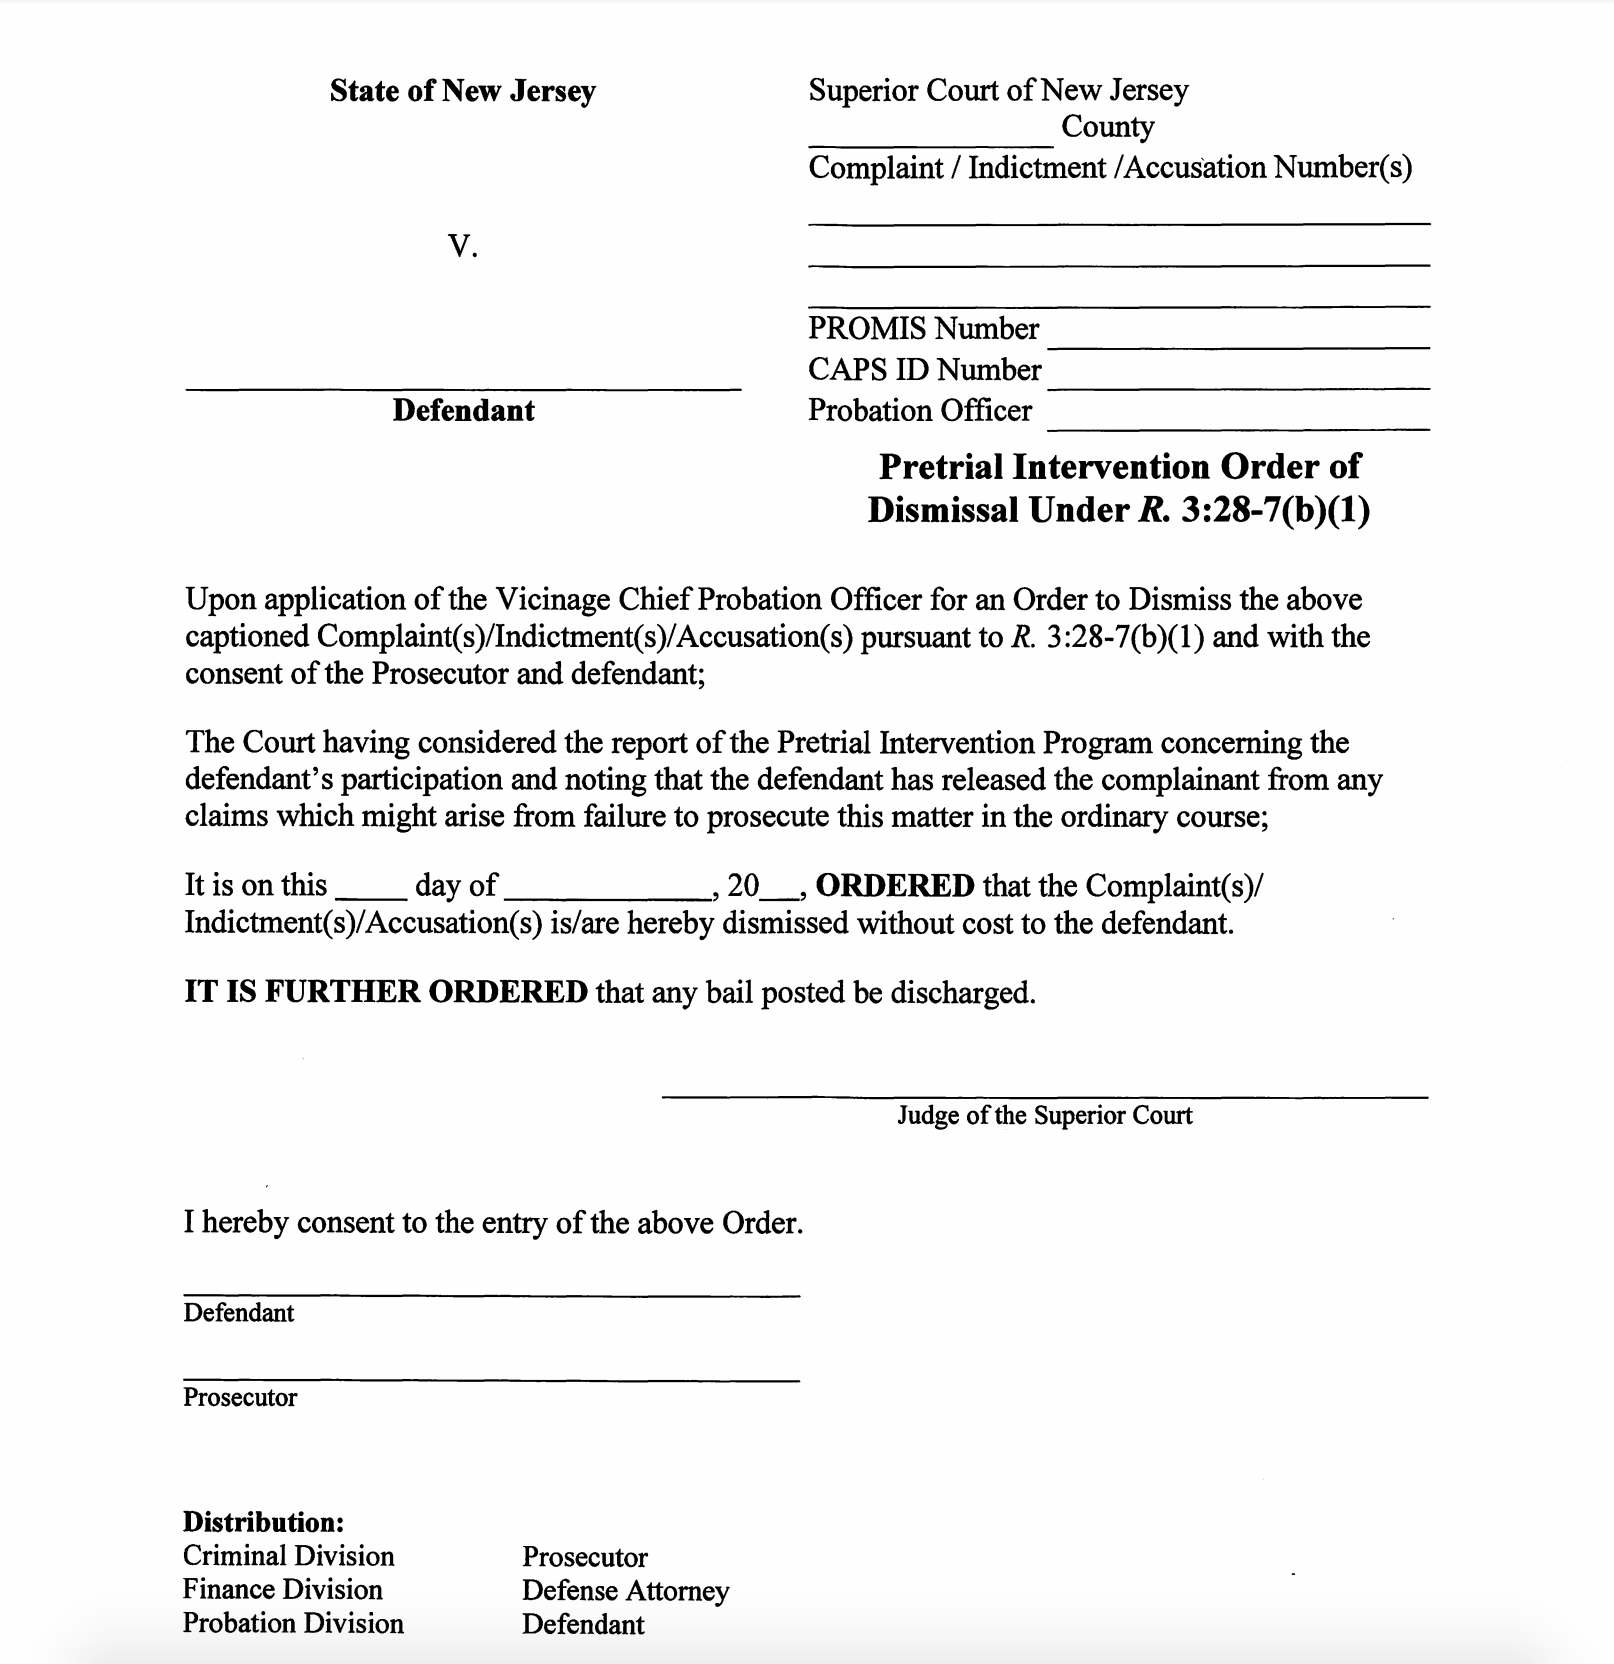 Your criminal charge will be dismissed if you successfully complete the Pretrial Intervention program and this is a copy of the order that will be entered in your favor.